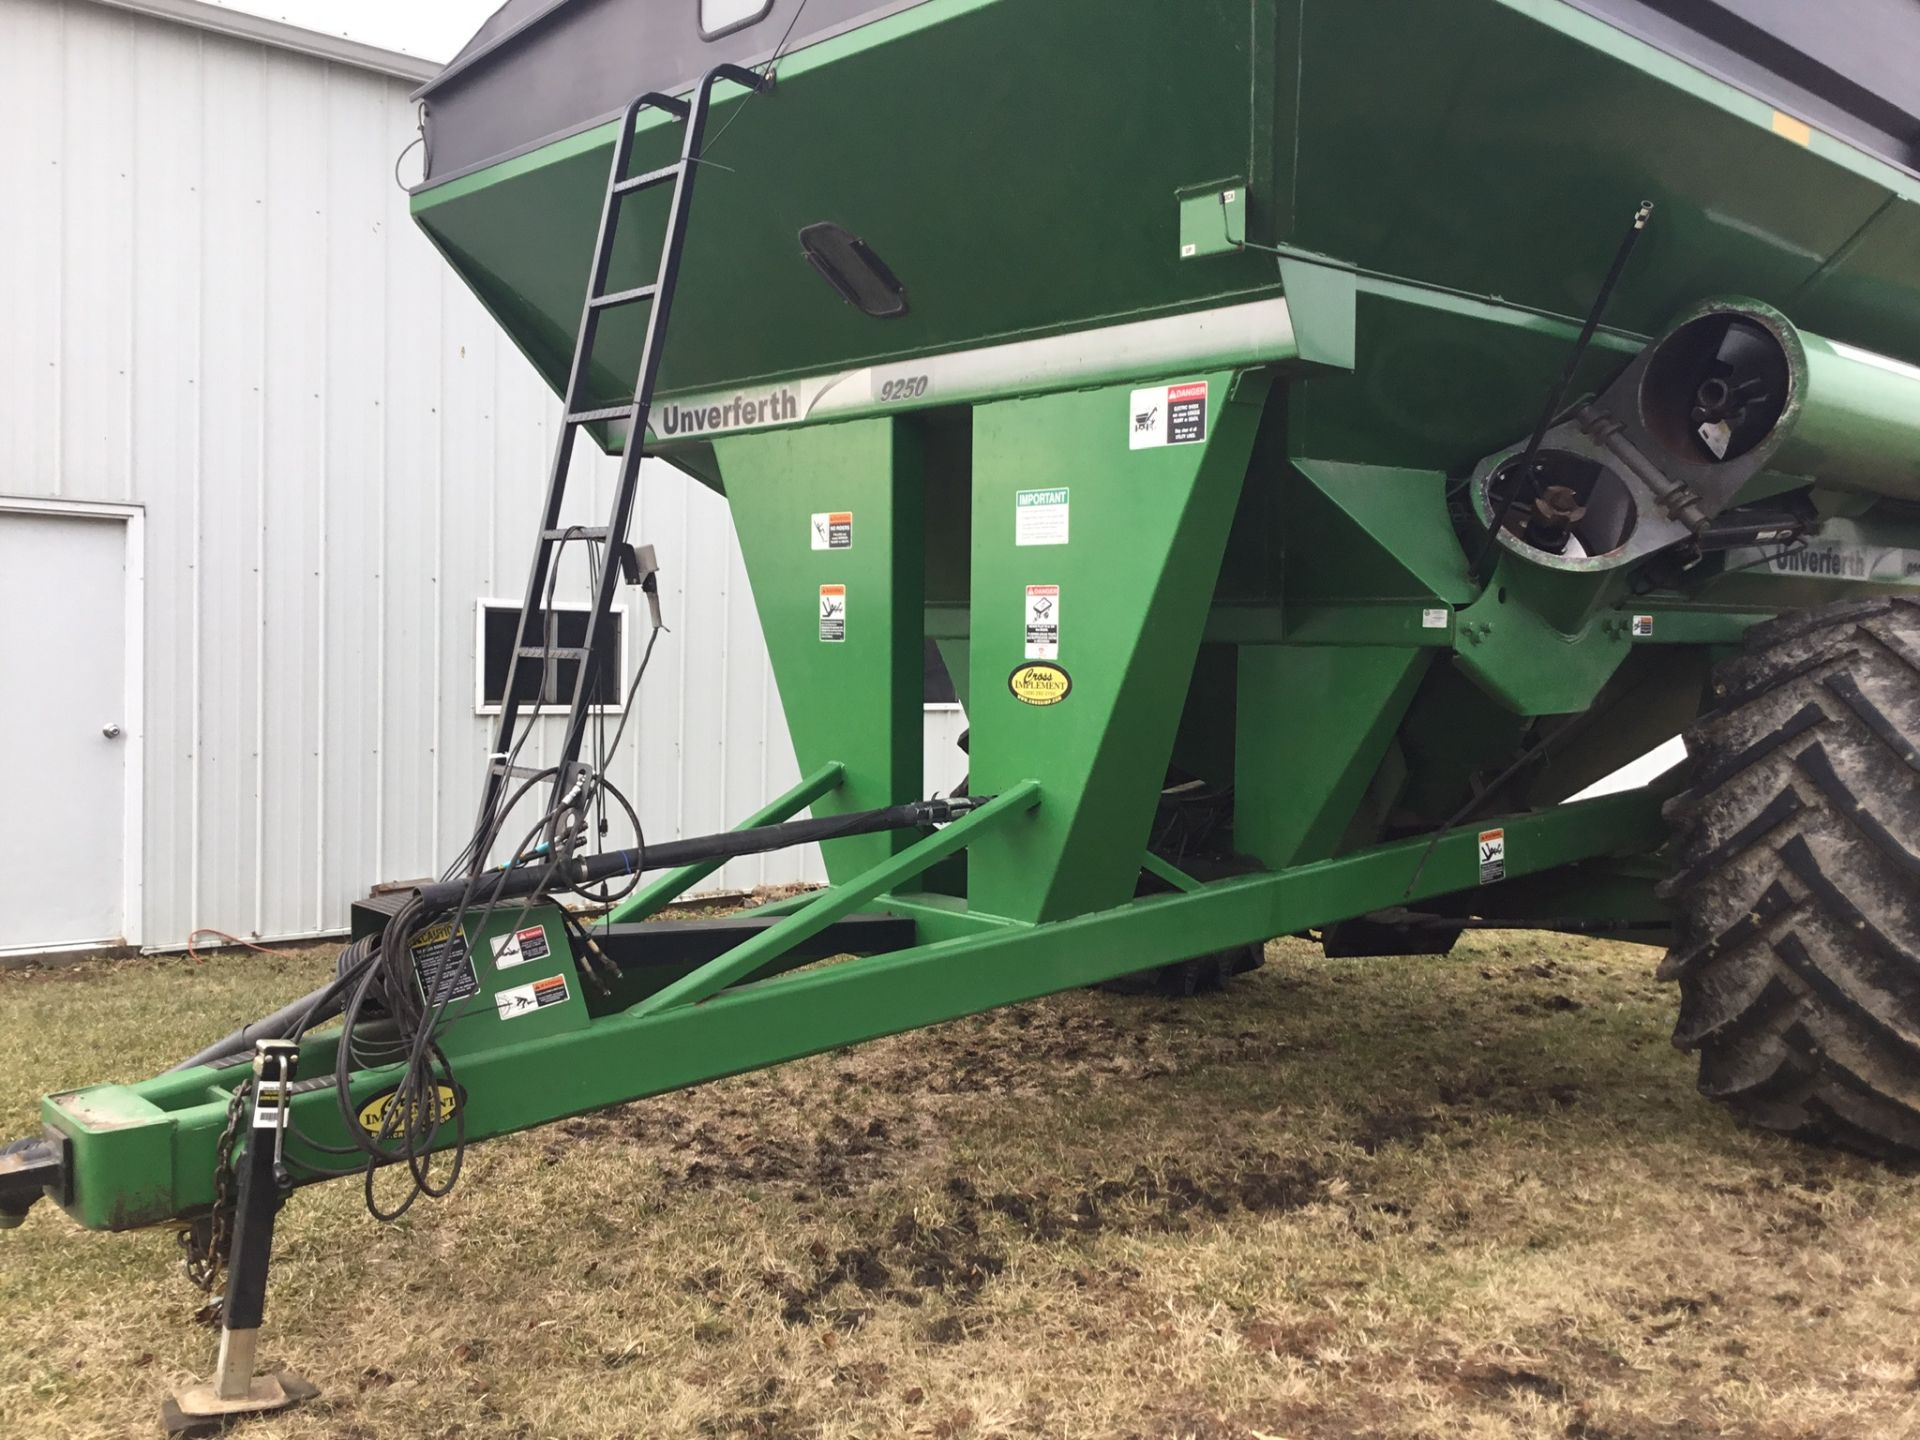 2009 Unverferth 9250 1,000 Bu. Auger Cart, Hydraulic Spout, 3 Cameras, Roll Tarp, New Augers, 900- - Image 14 of 15